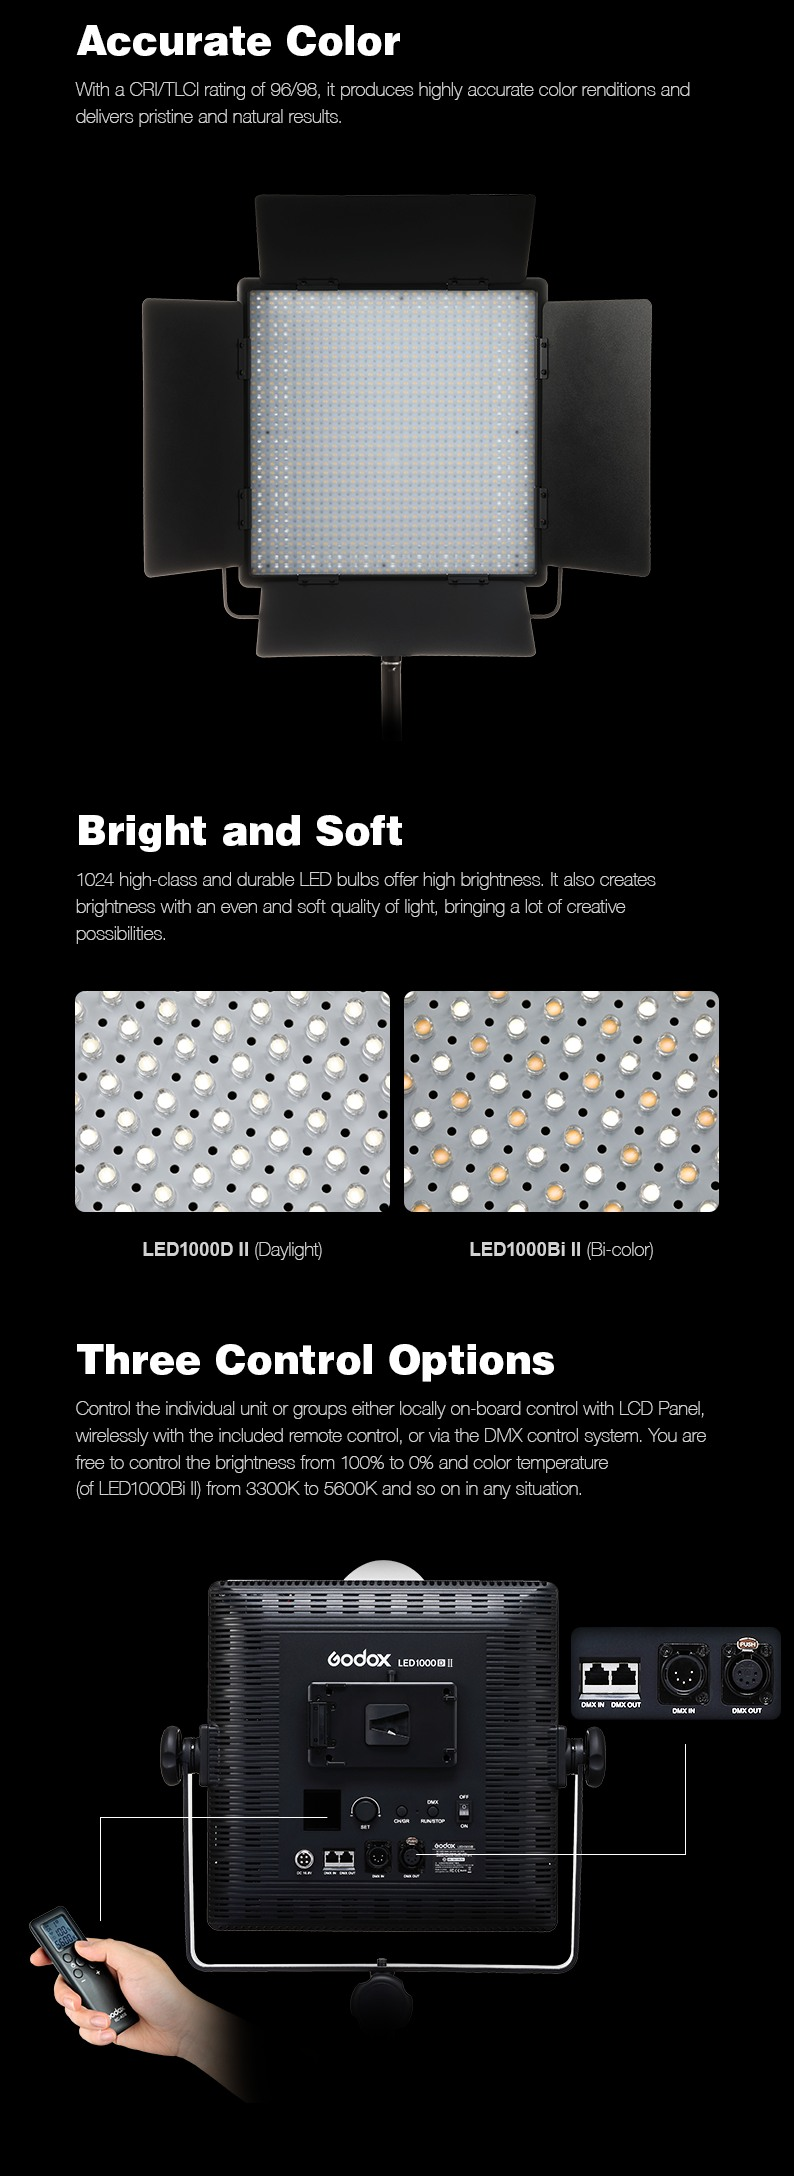 Godox LED1000II series. Accurate Color, Bright and Soft, Three Control Options.